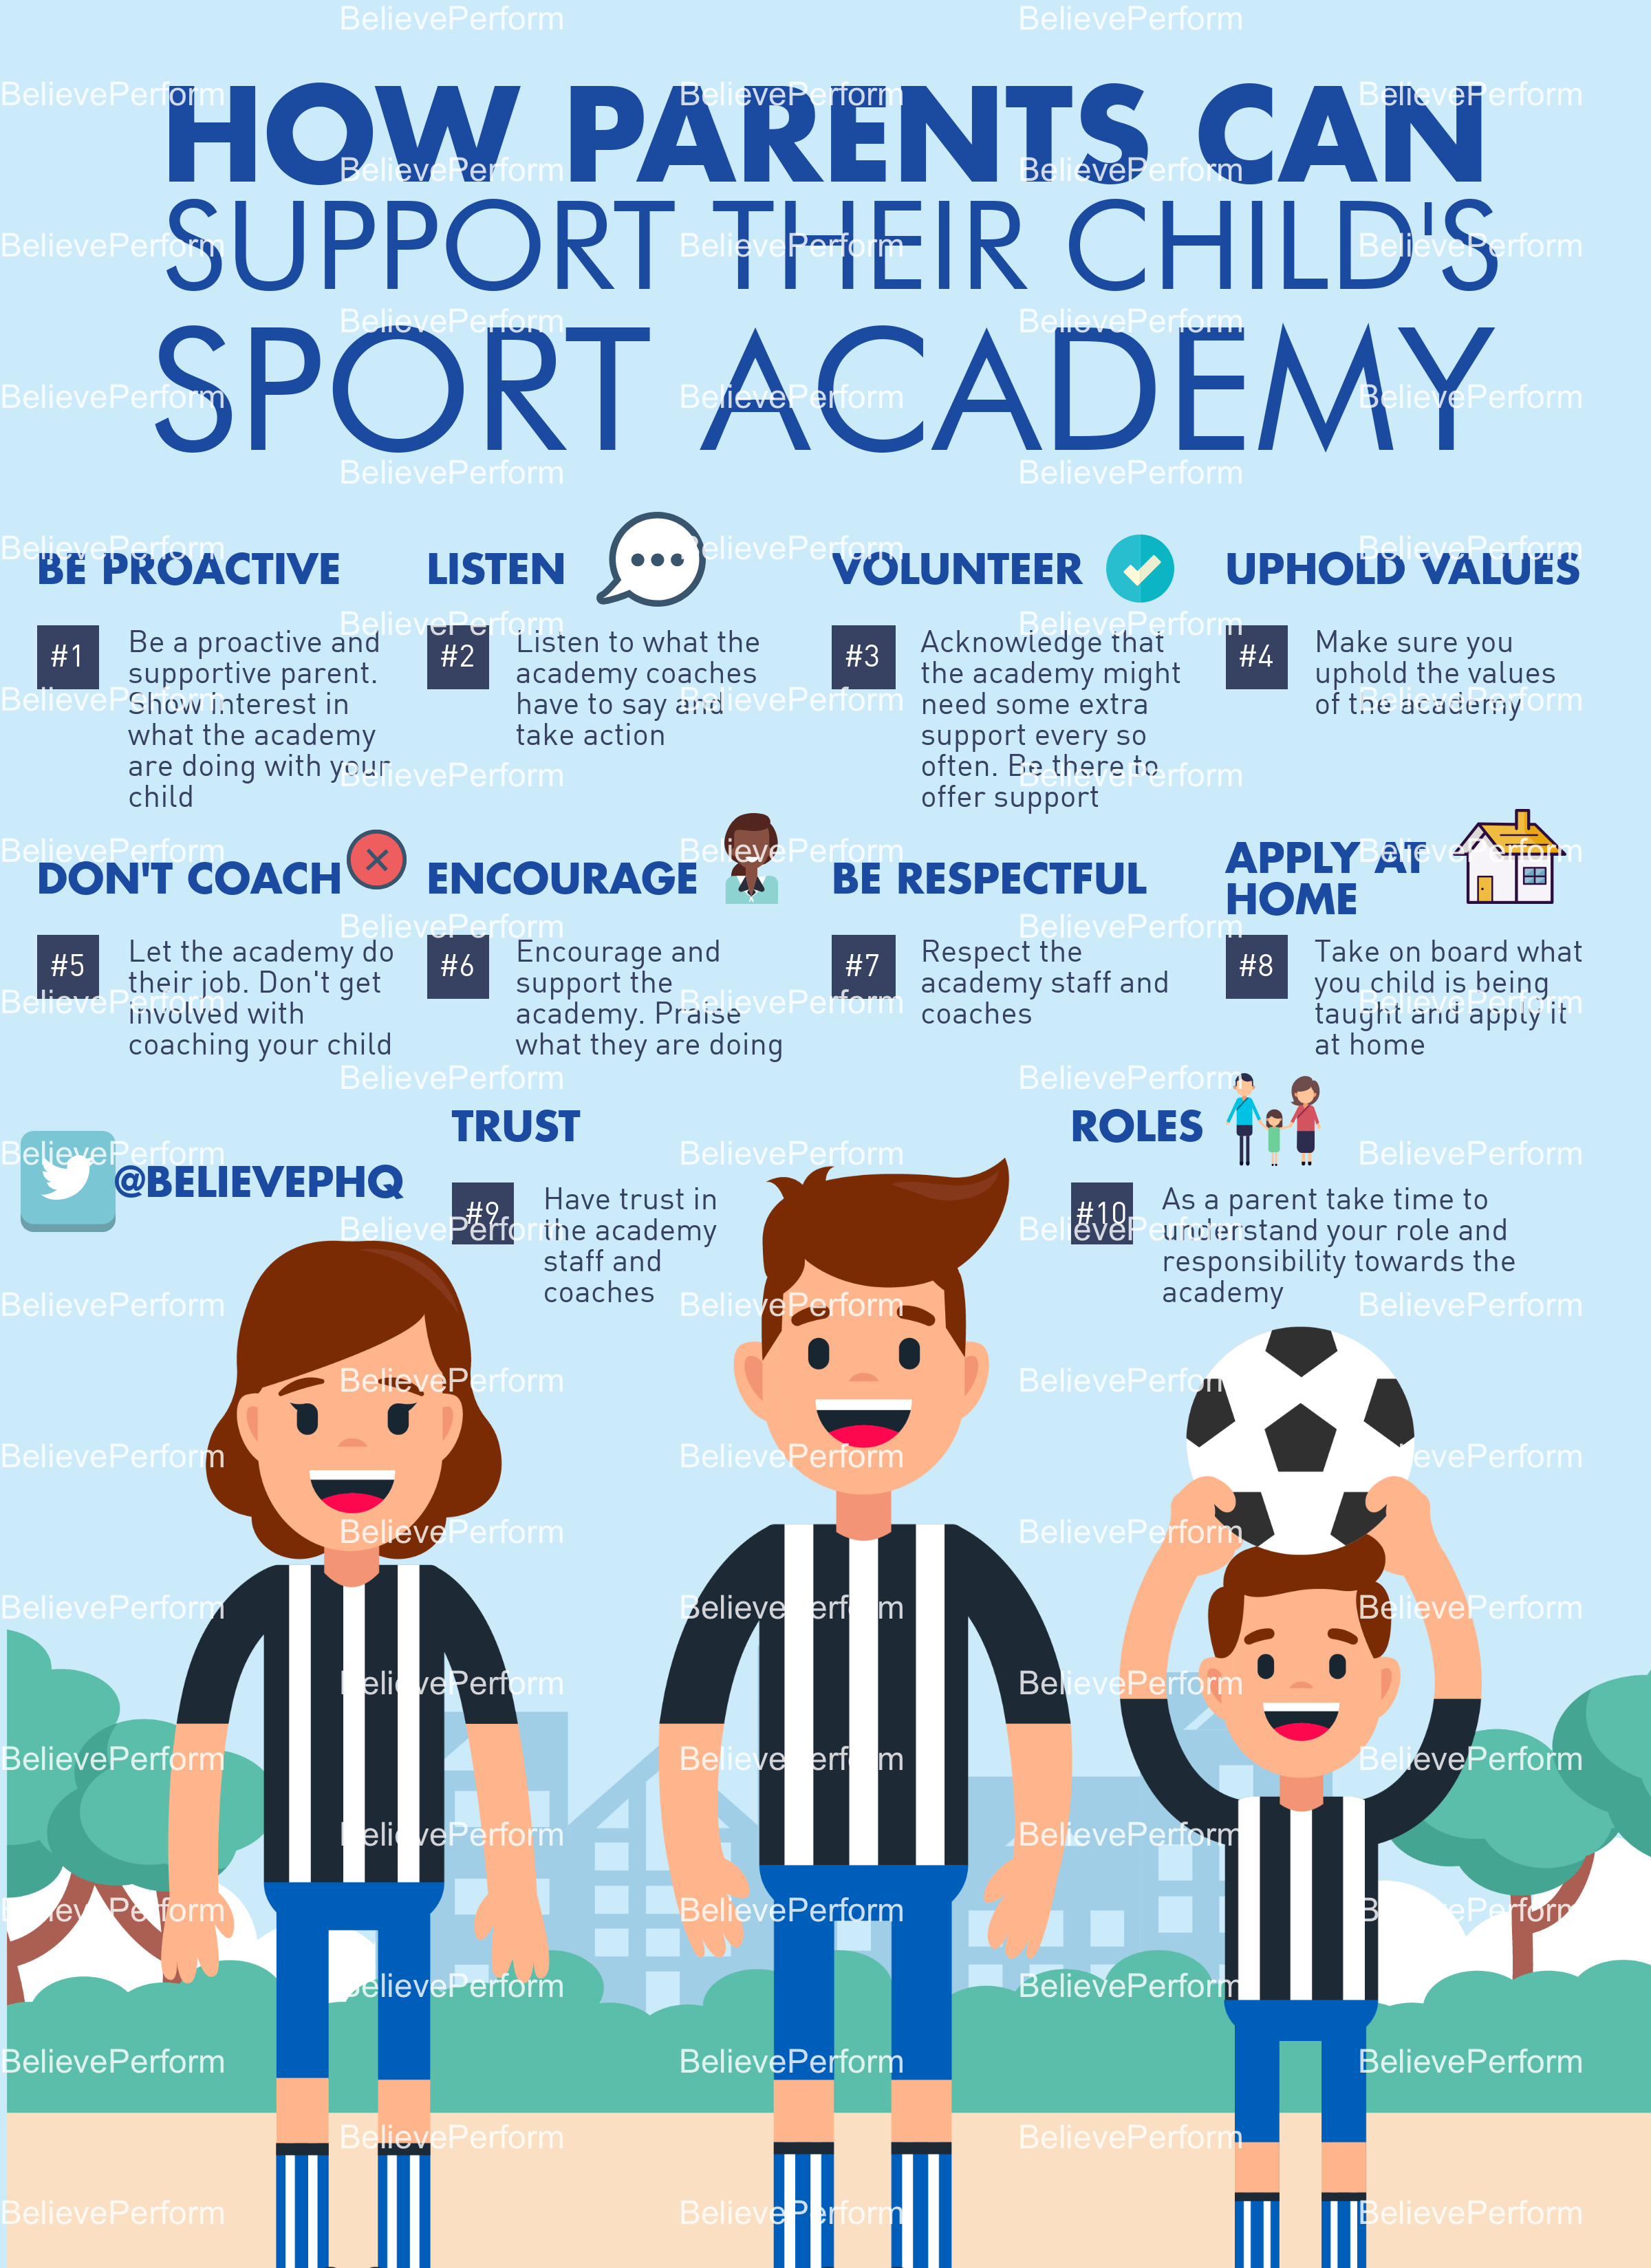 How parents can support their child's sport academy